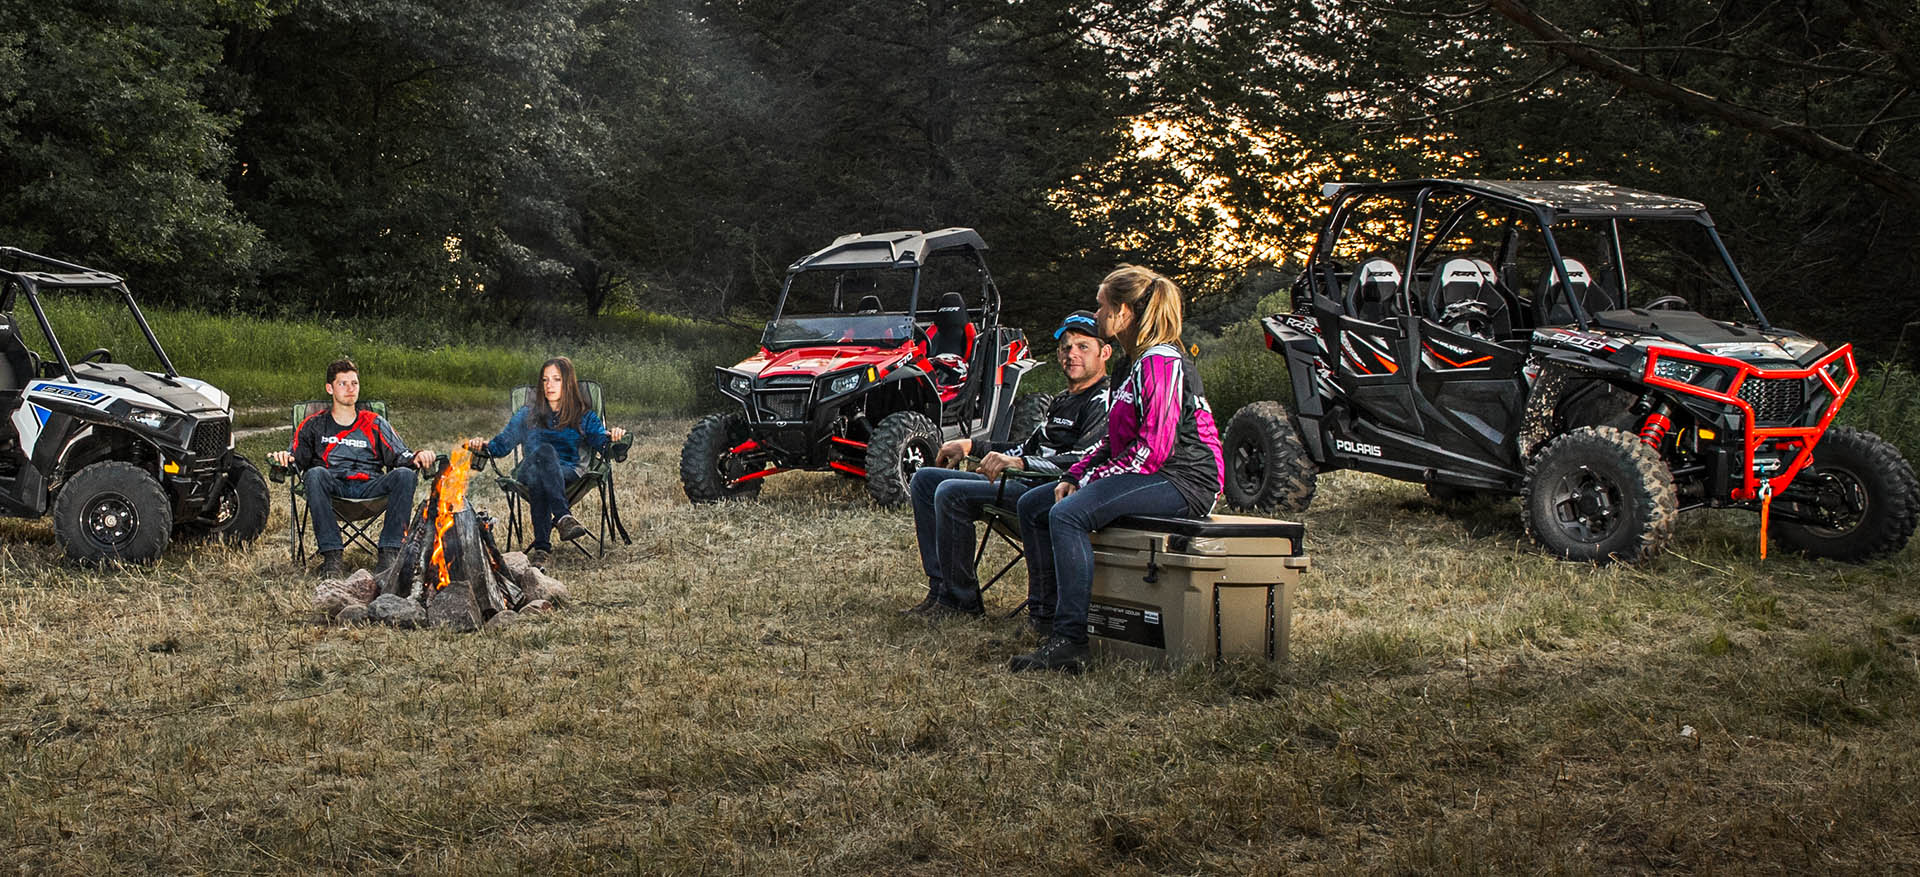 rzr-900-eps-xc-edition-media-location-2-lg